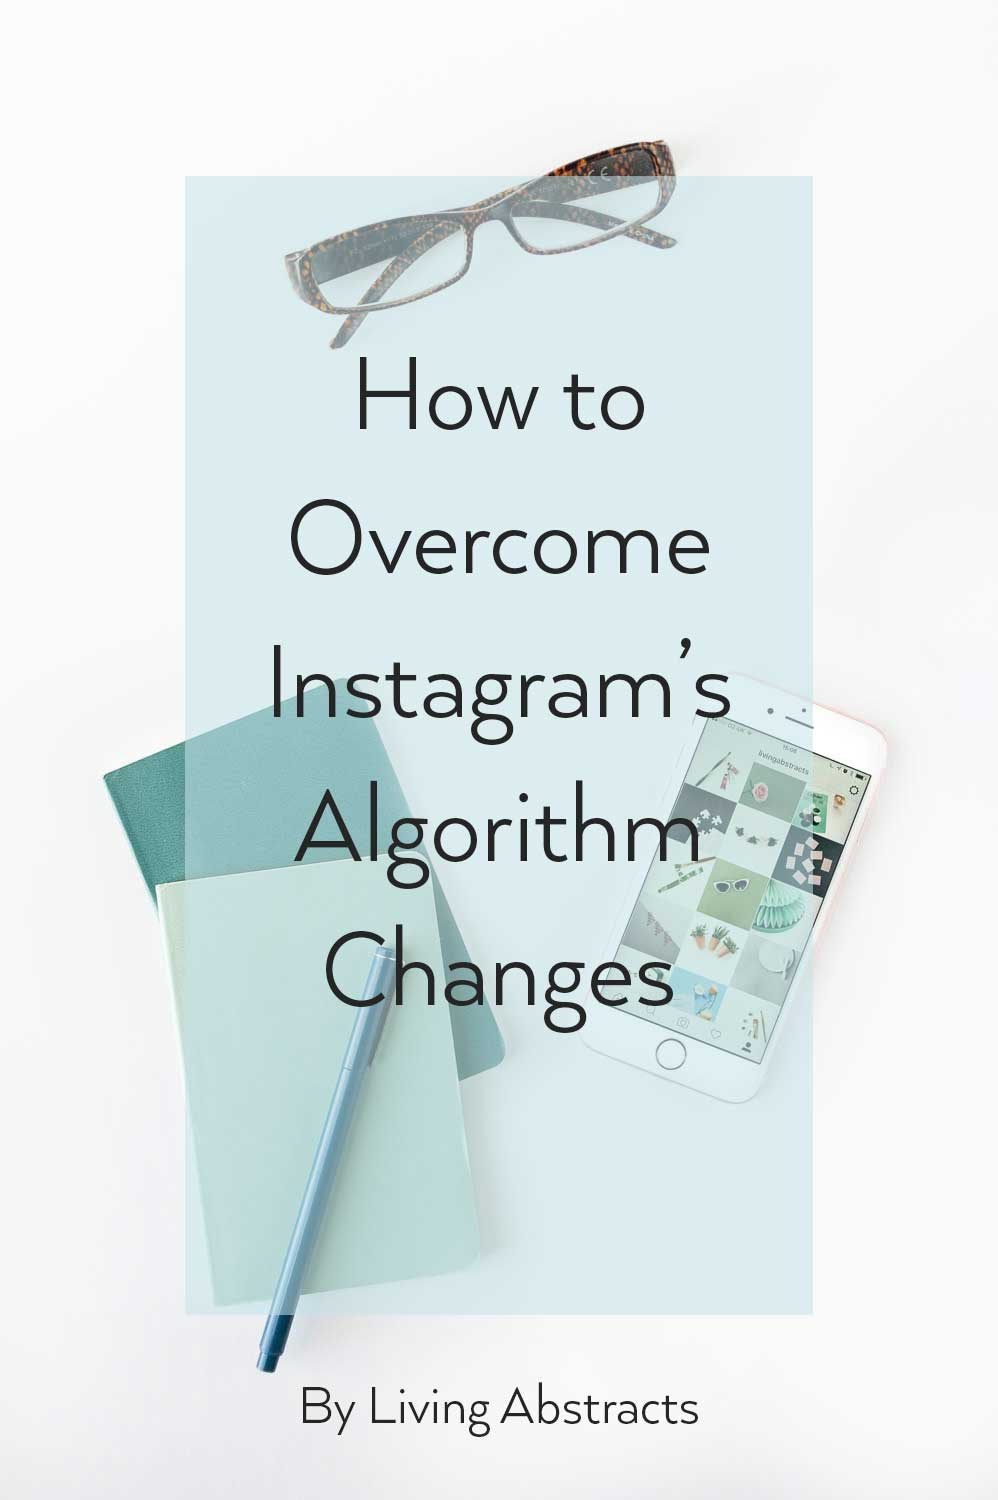 How to overcome Instagram's recent algorithm changes for more likes and followers